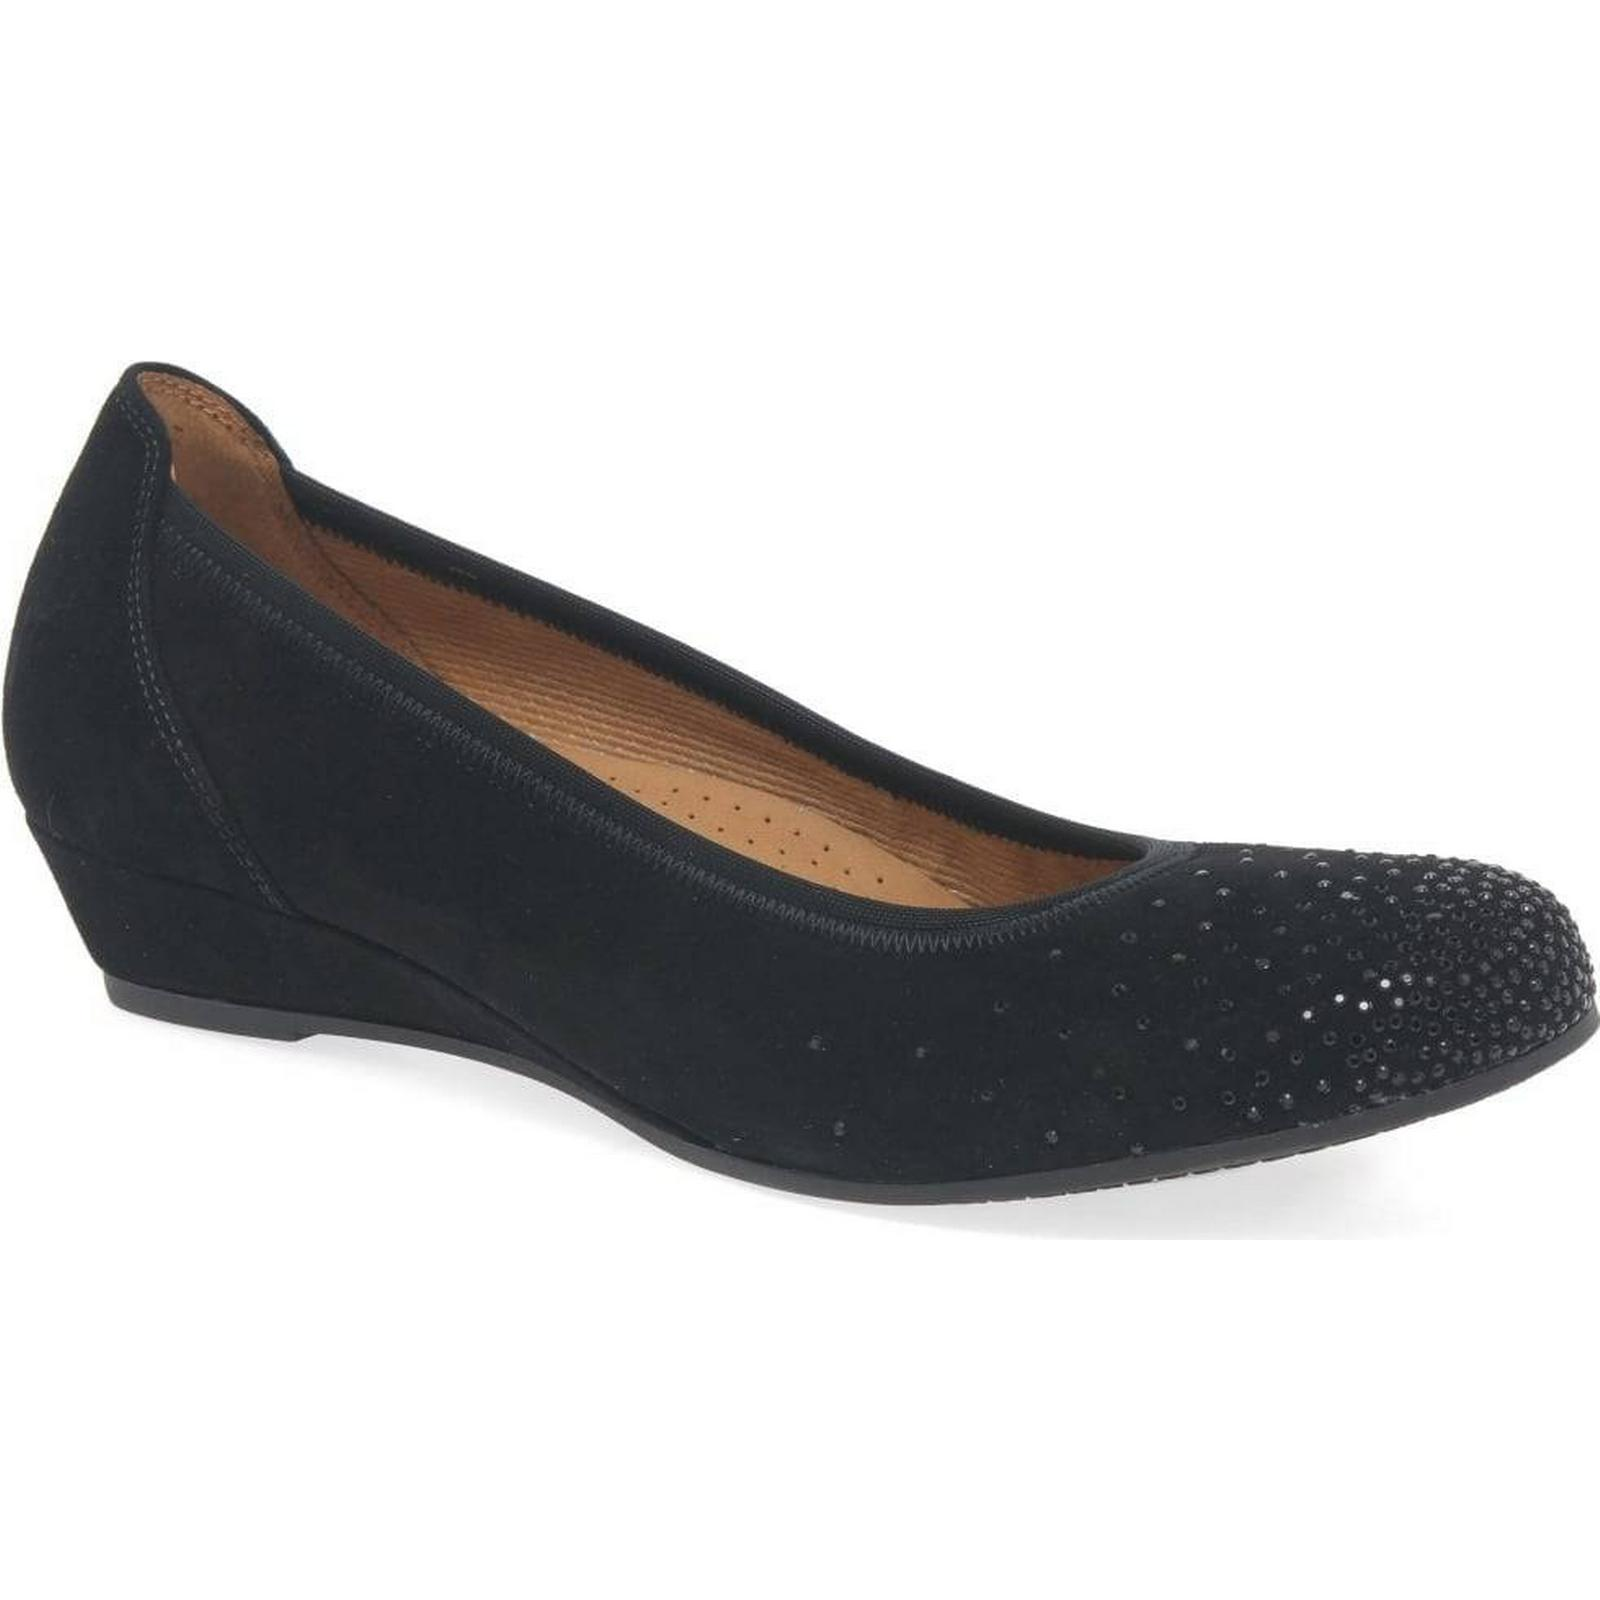 Gabor Arya Womens Casual Shoes 4.5 Colour: Black Suede, Size: 4.5 Shoes 9327b1